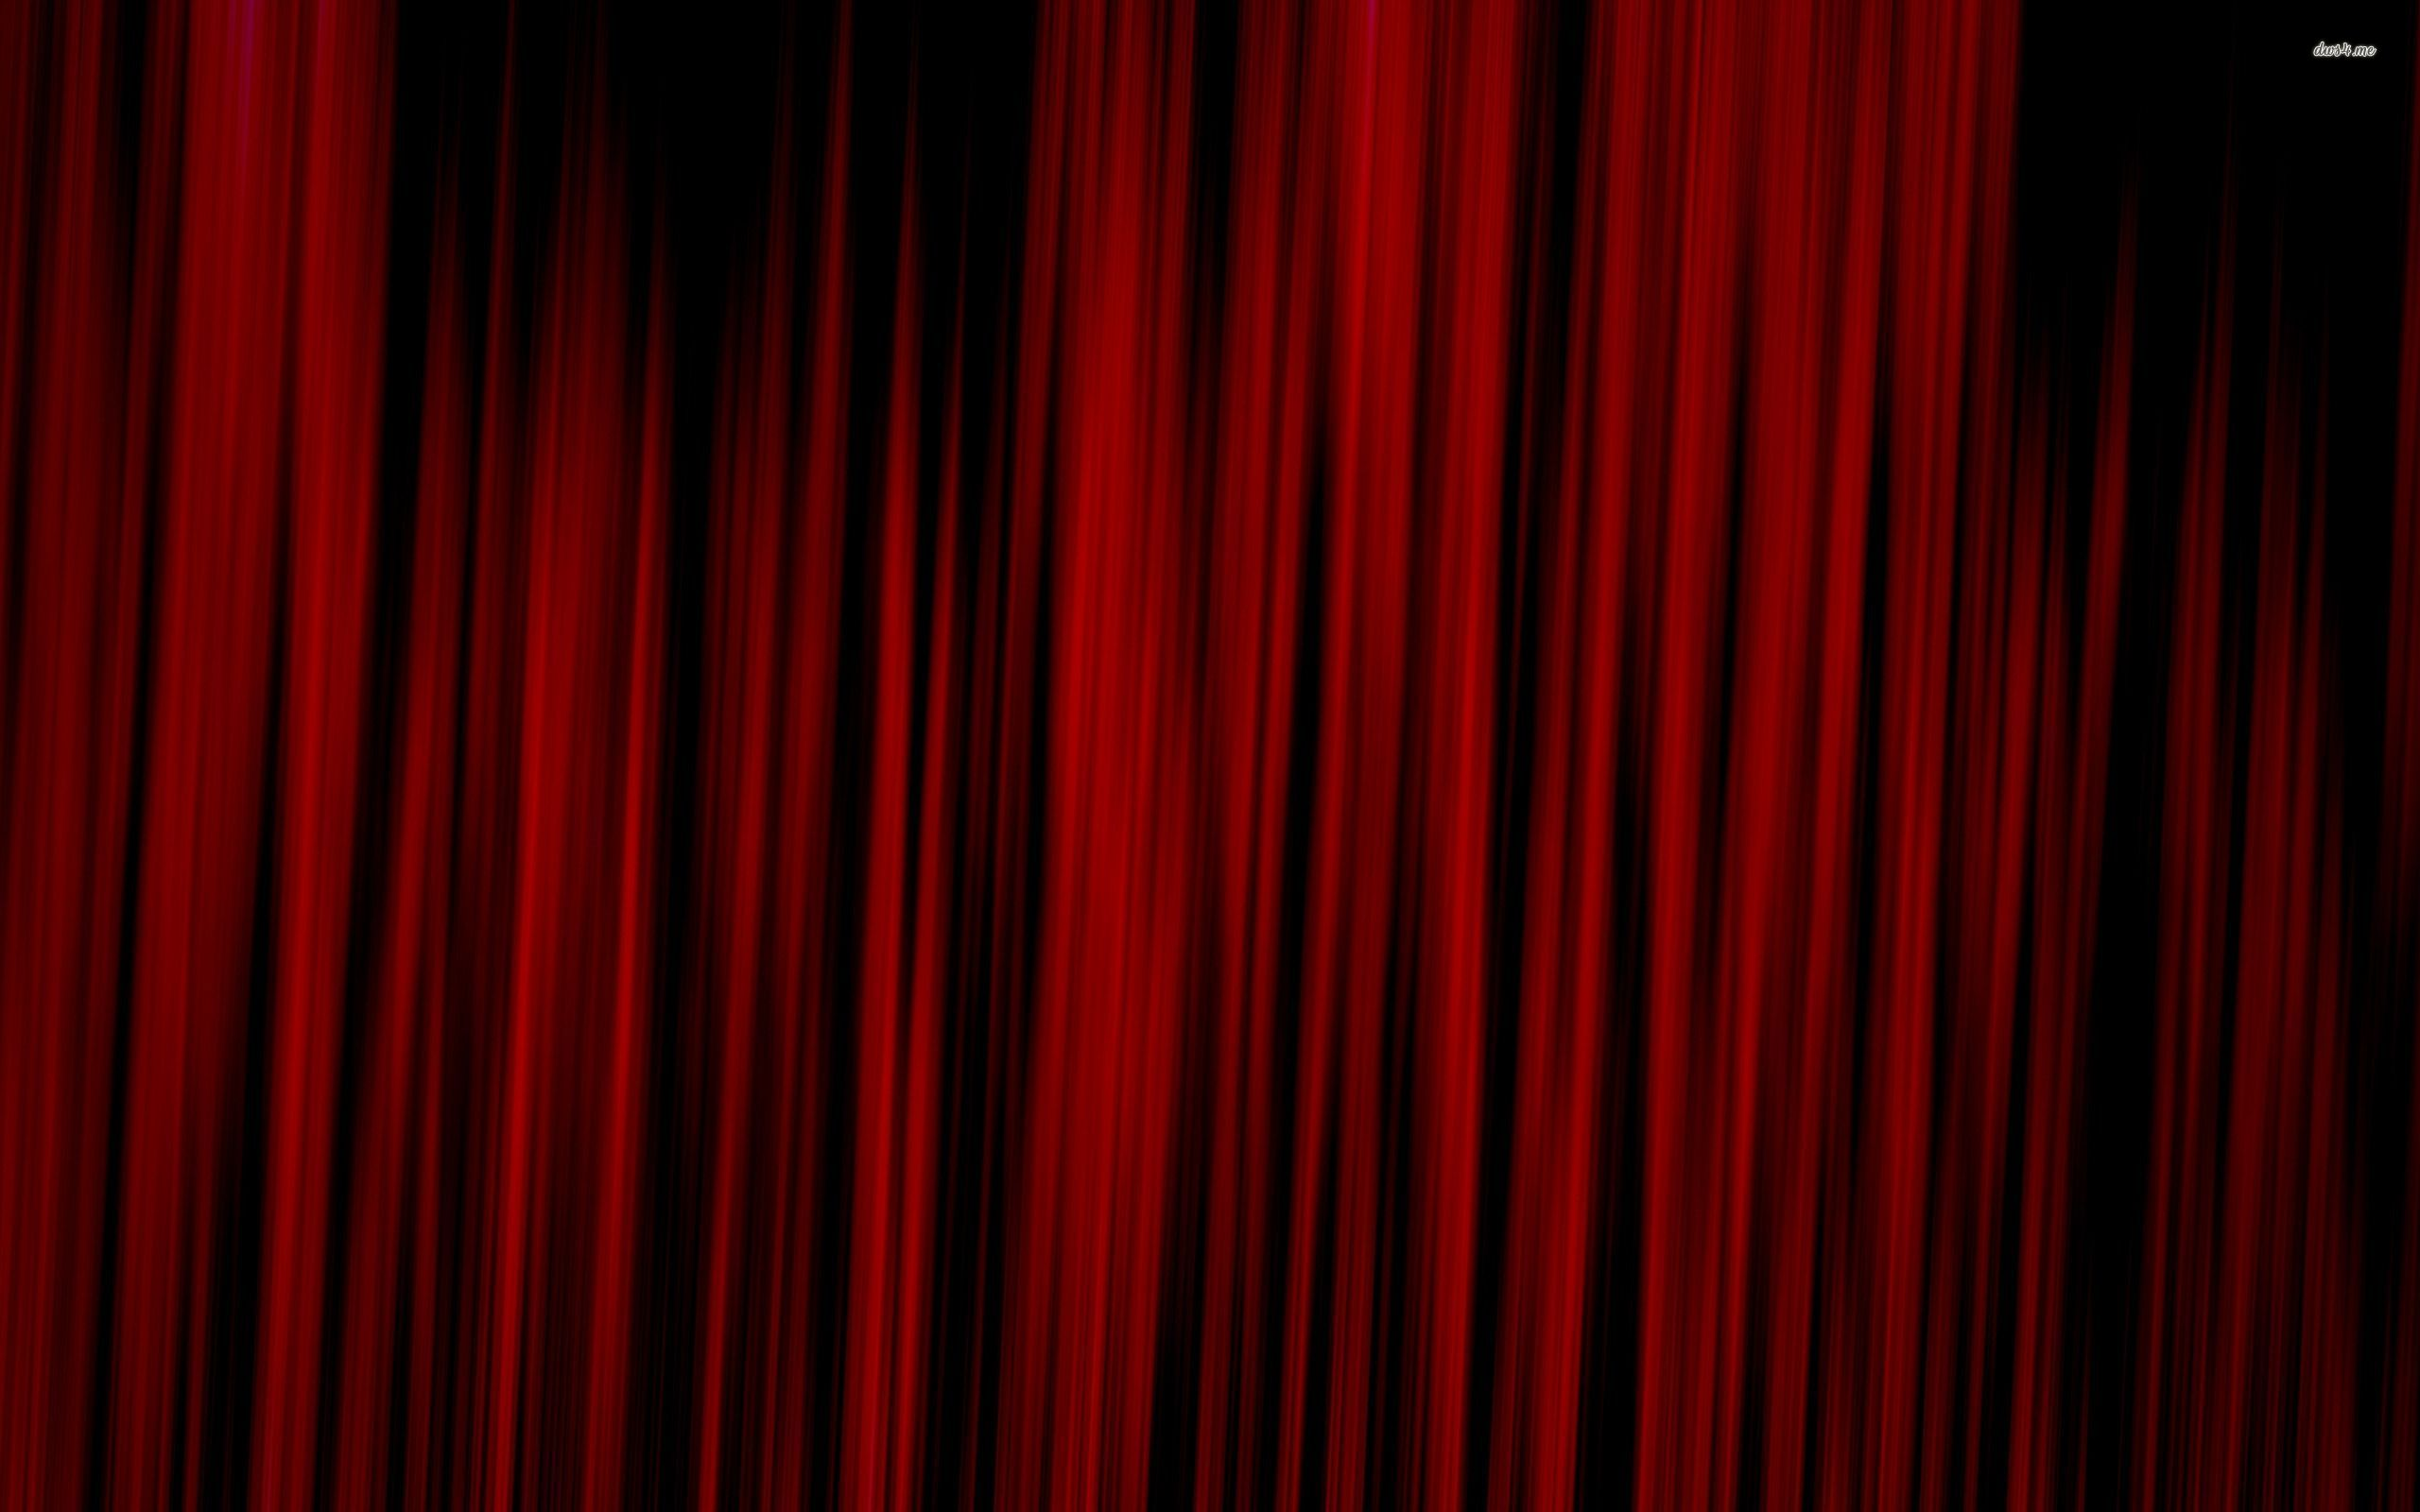 Red velvet curtain wallpaper - Red Velvet Curtain Wallpaper 1202037